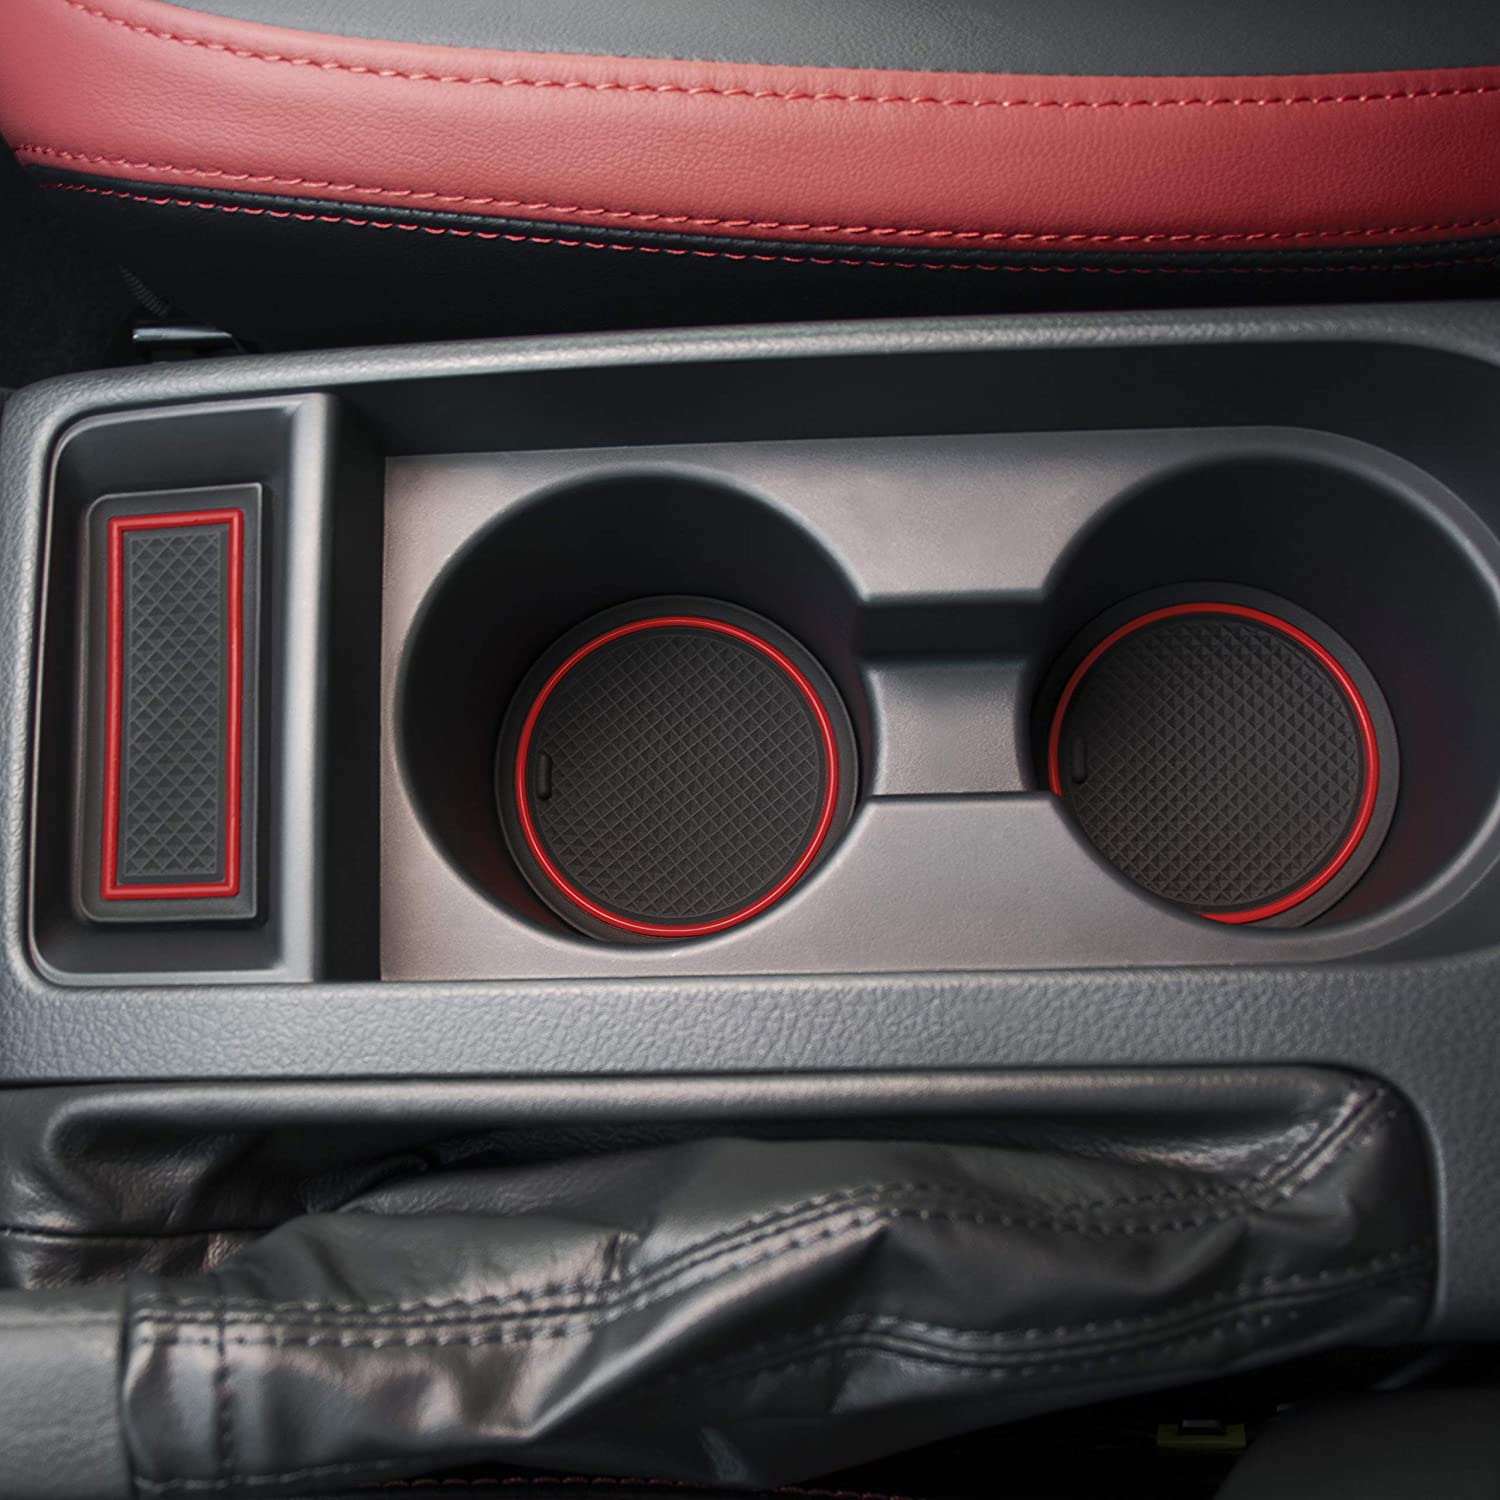 VCiiC Custom Fit Interior Cup Holder Inserts Door Liner Accessories for Subaru WRX 2015 2016 2017 2018 2019 2020 Red Trim